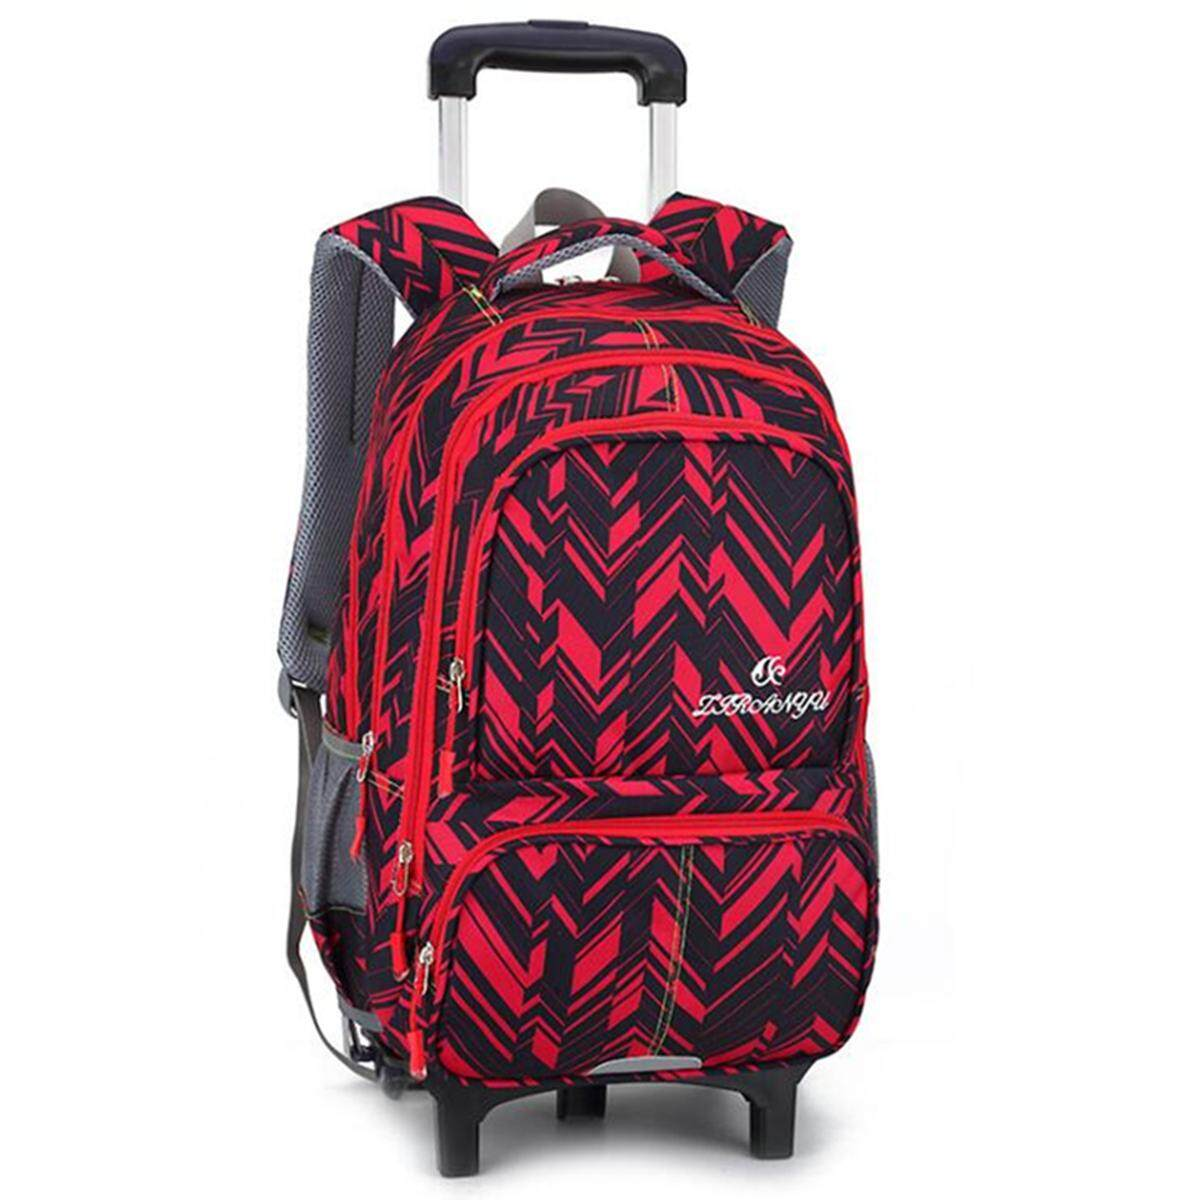 5265ee1ed8 Kid 2 6 Wheels Detachable Travel Trolley Luggage Backpack Student School Bag   2 wheel